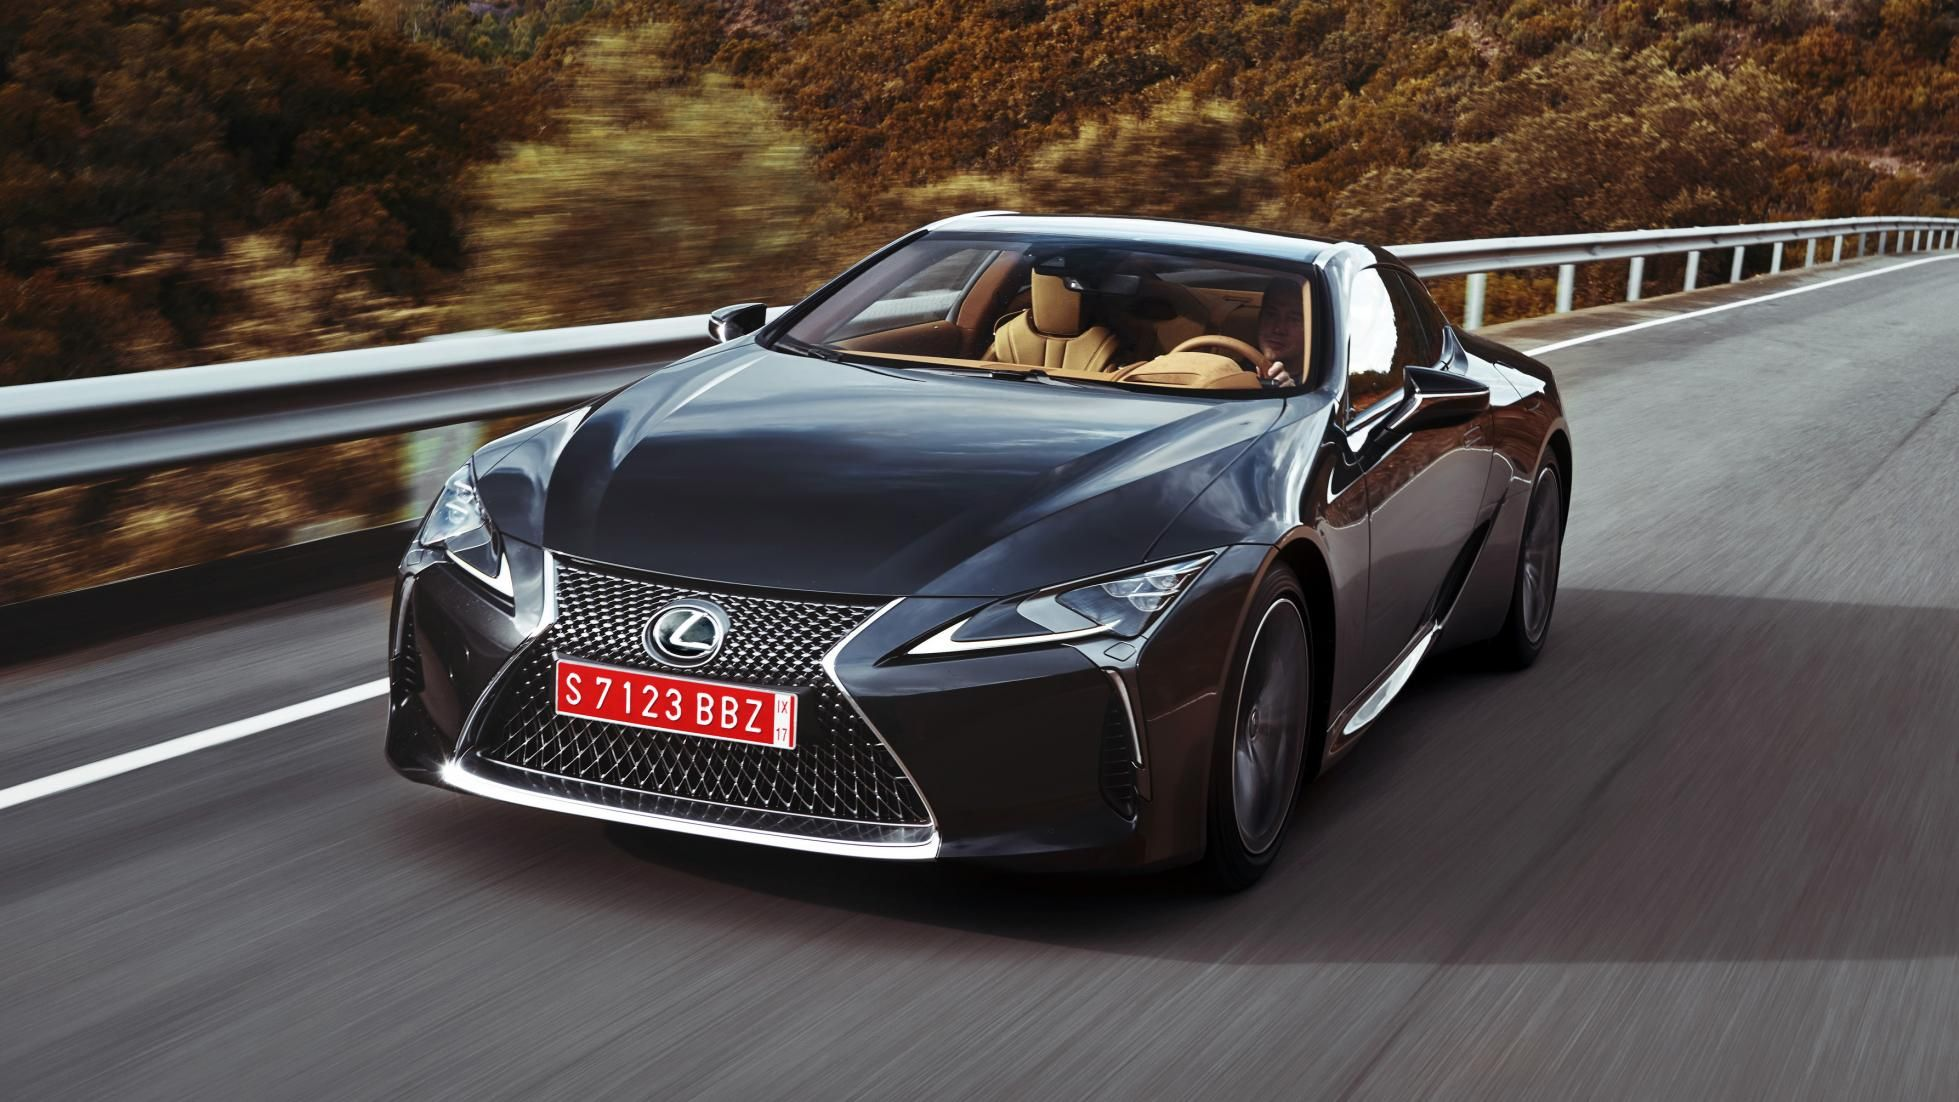 Lexus Lc500 Review Super Coupe Tested In The Us Lexus Lc Lexus Lexus Sport